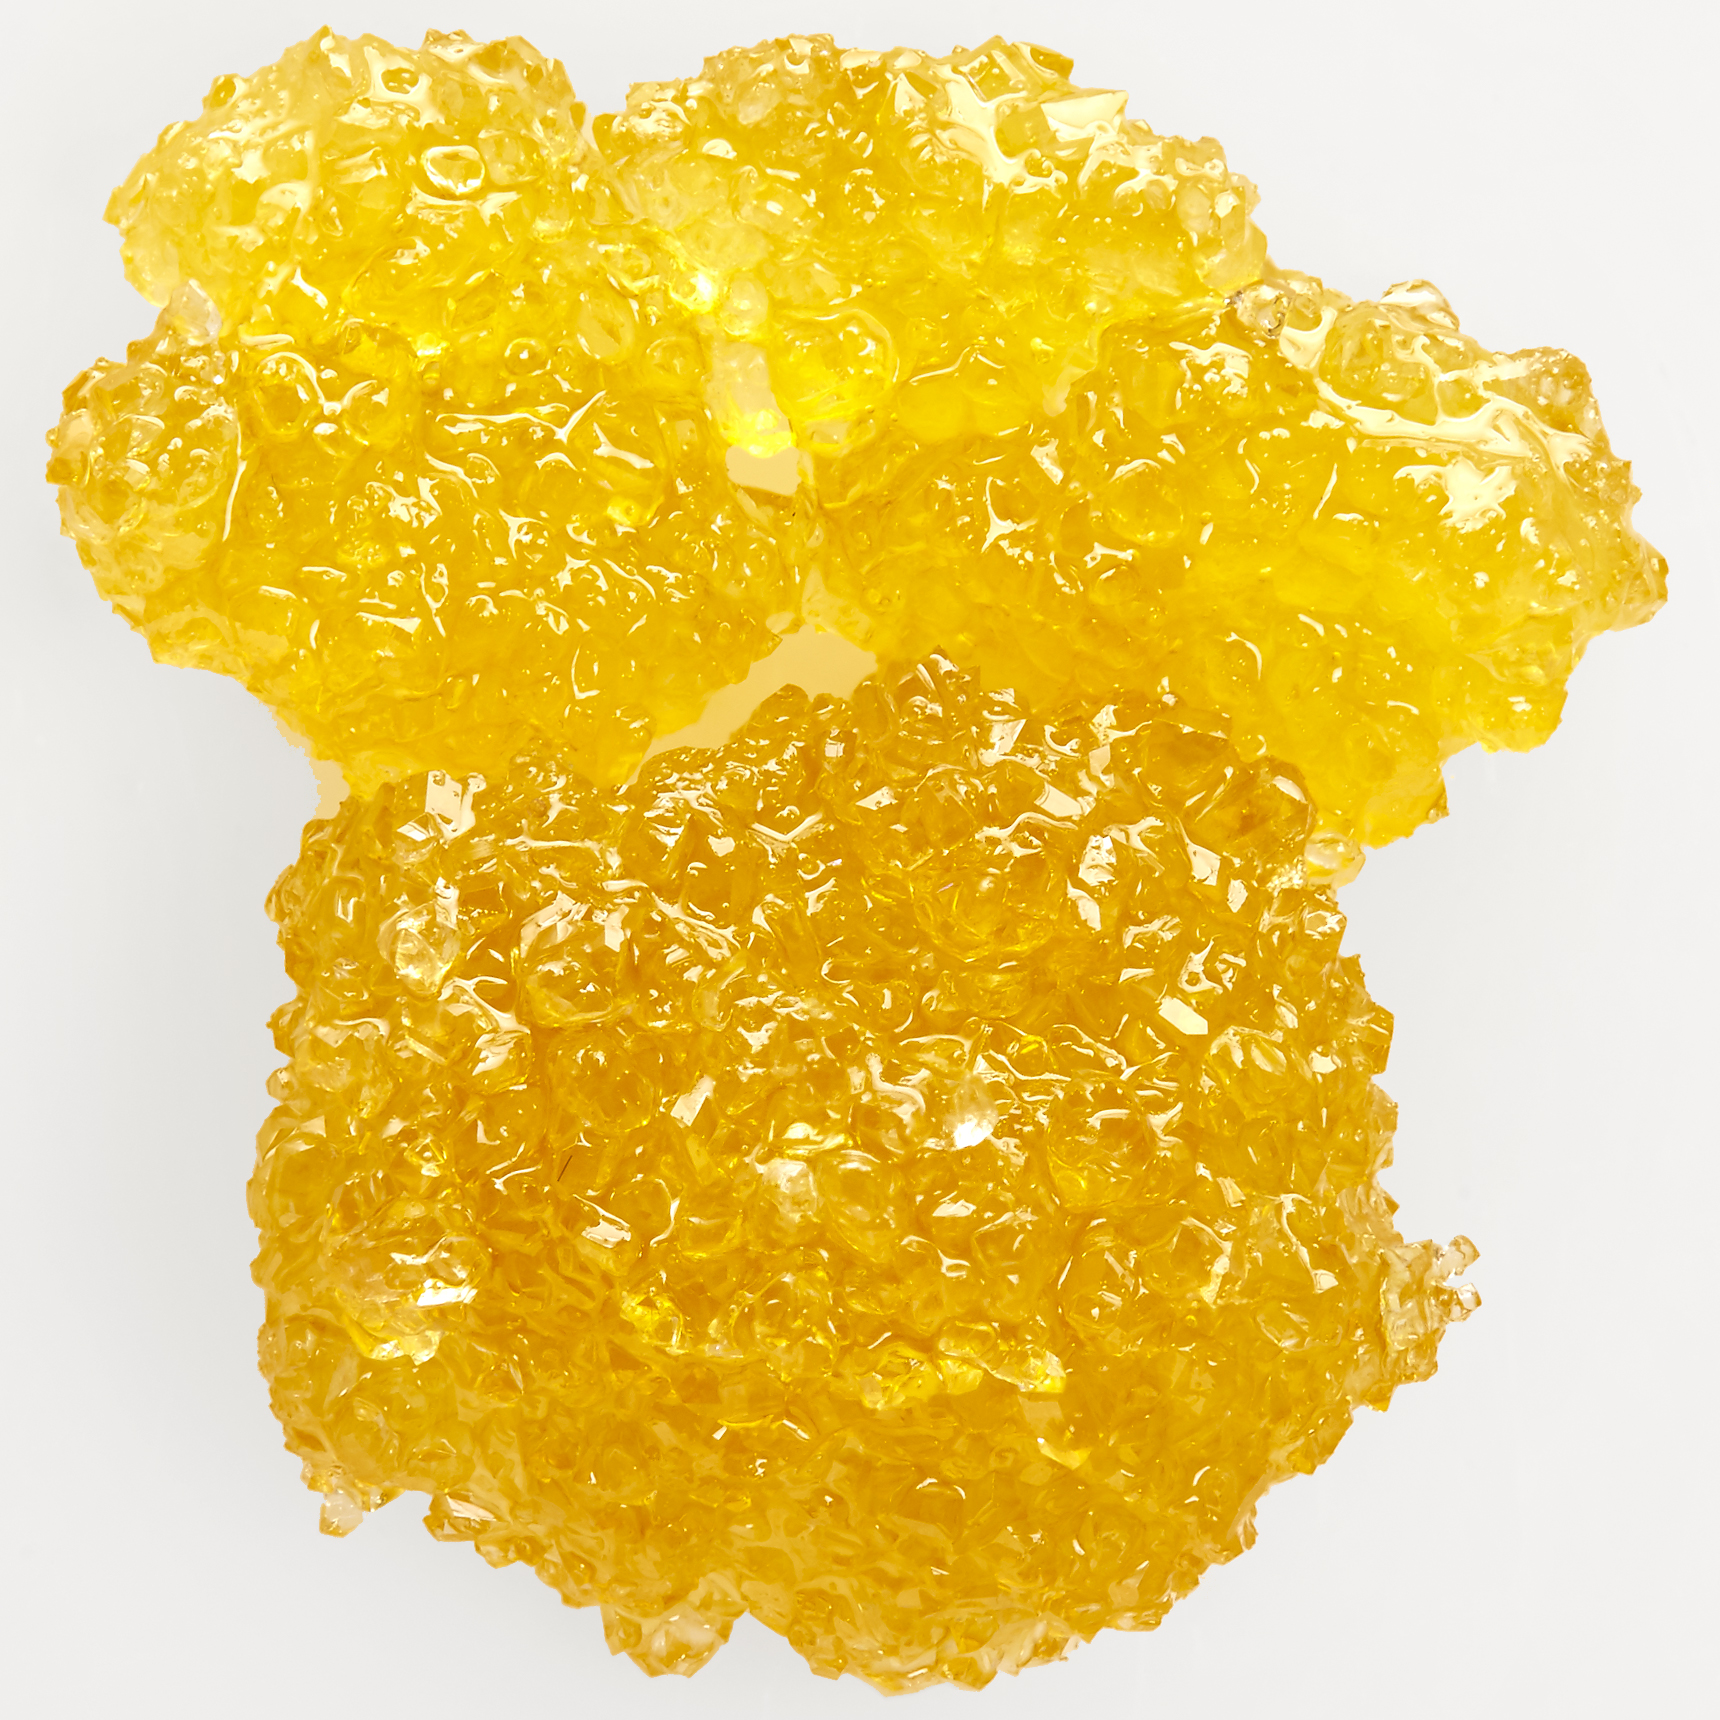 WEB_Crown OG Live Resin_v414865_$60_ NS Studio_04.11.16 copy.jpg